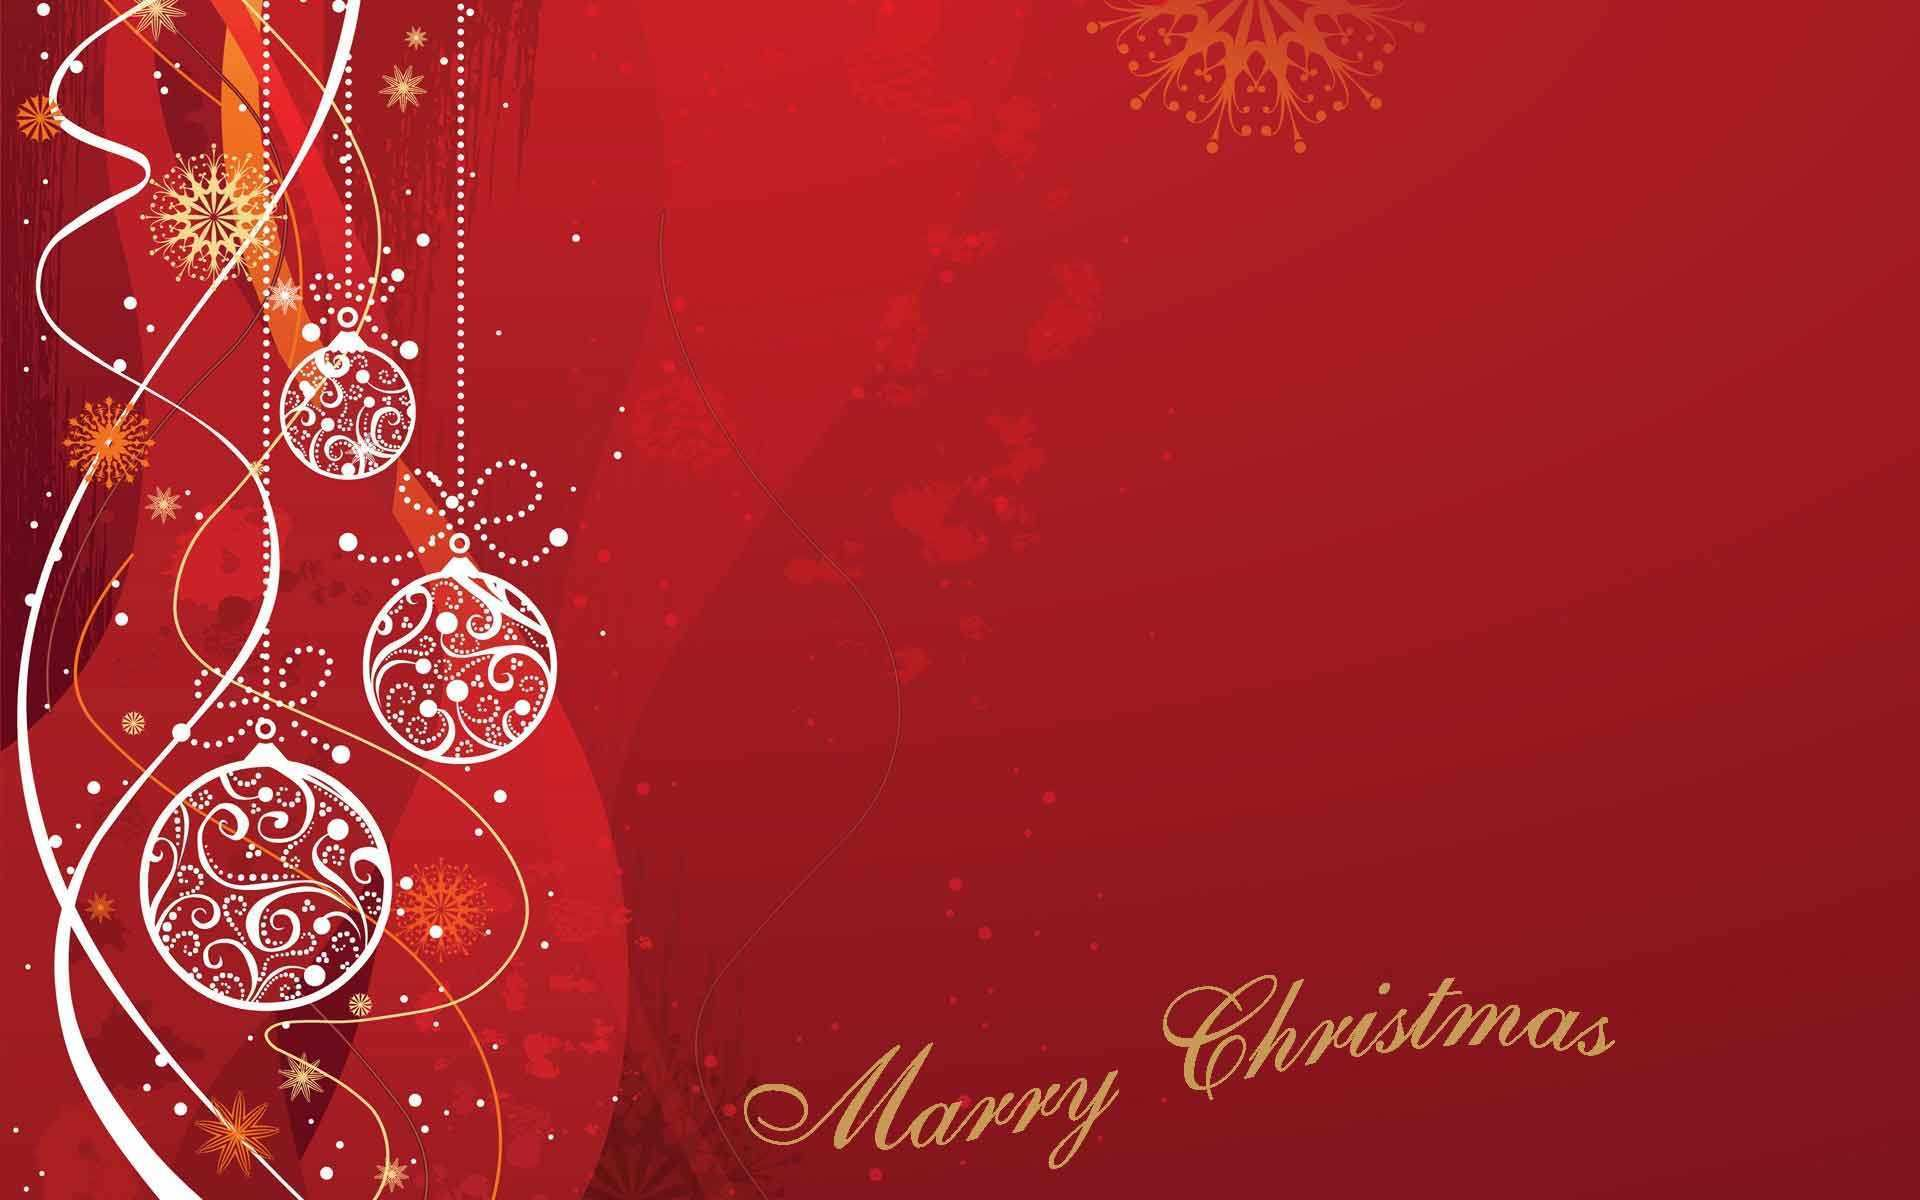 23 Visiting Free Christmas Card Template For Email Formating for Free Christmas Card Template For Email